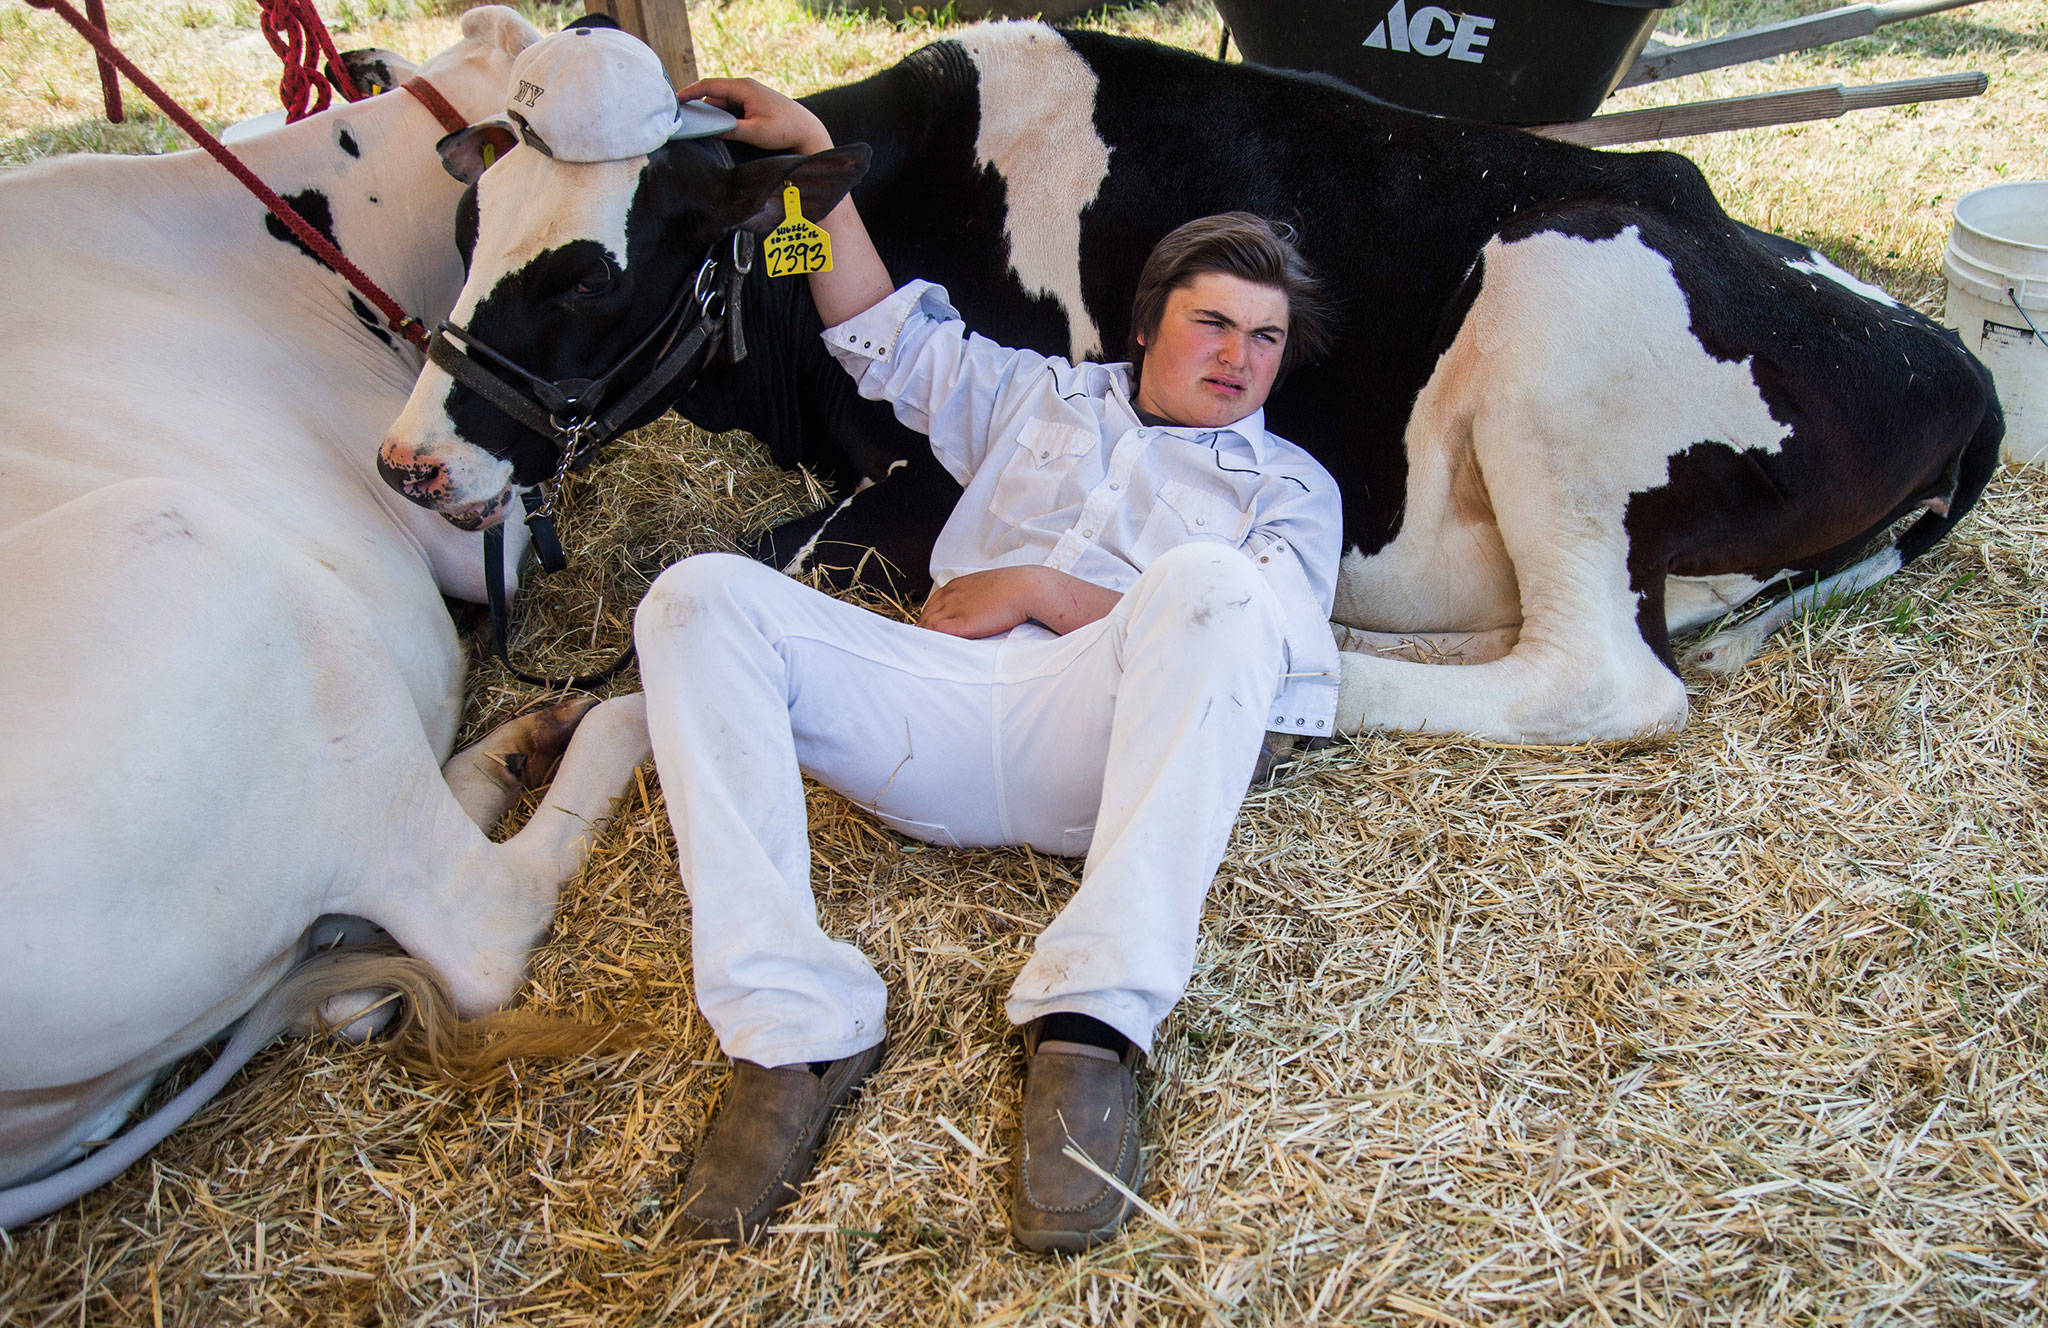 Magnus Cairus lays next to his cow Miss Esther during the Silvana Fair off of Pioneer Highway on Saturday, July 28, 2018 in Silvana, Wa. (Olivia Vanni / The Herald)